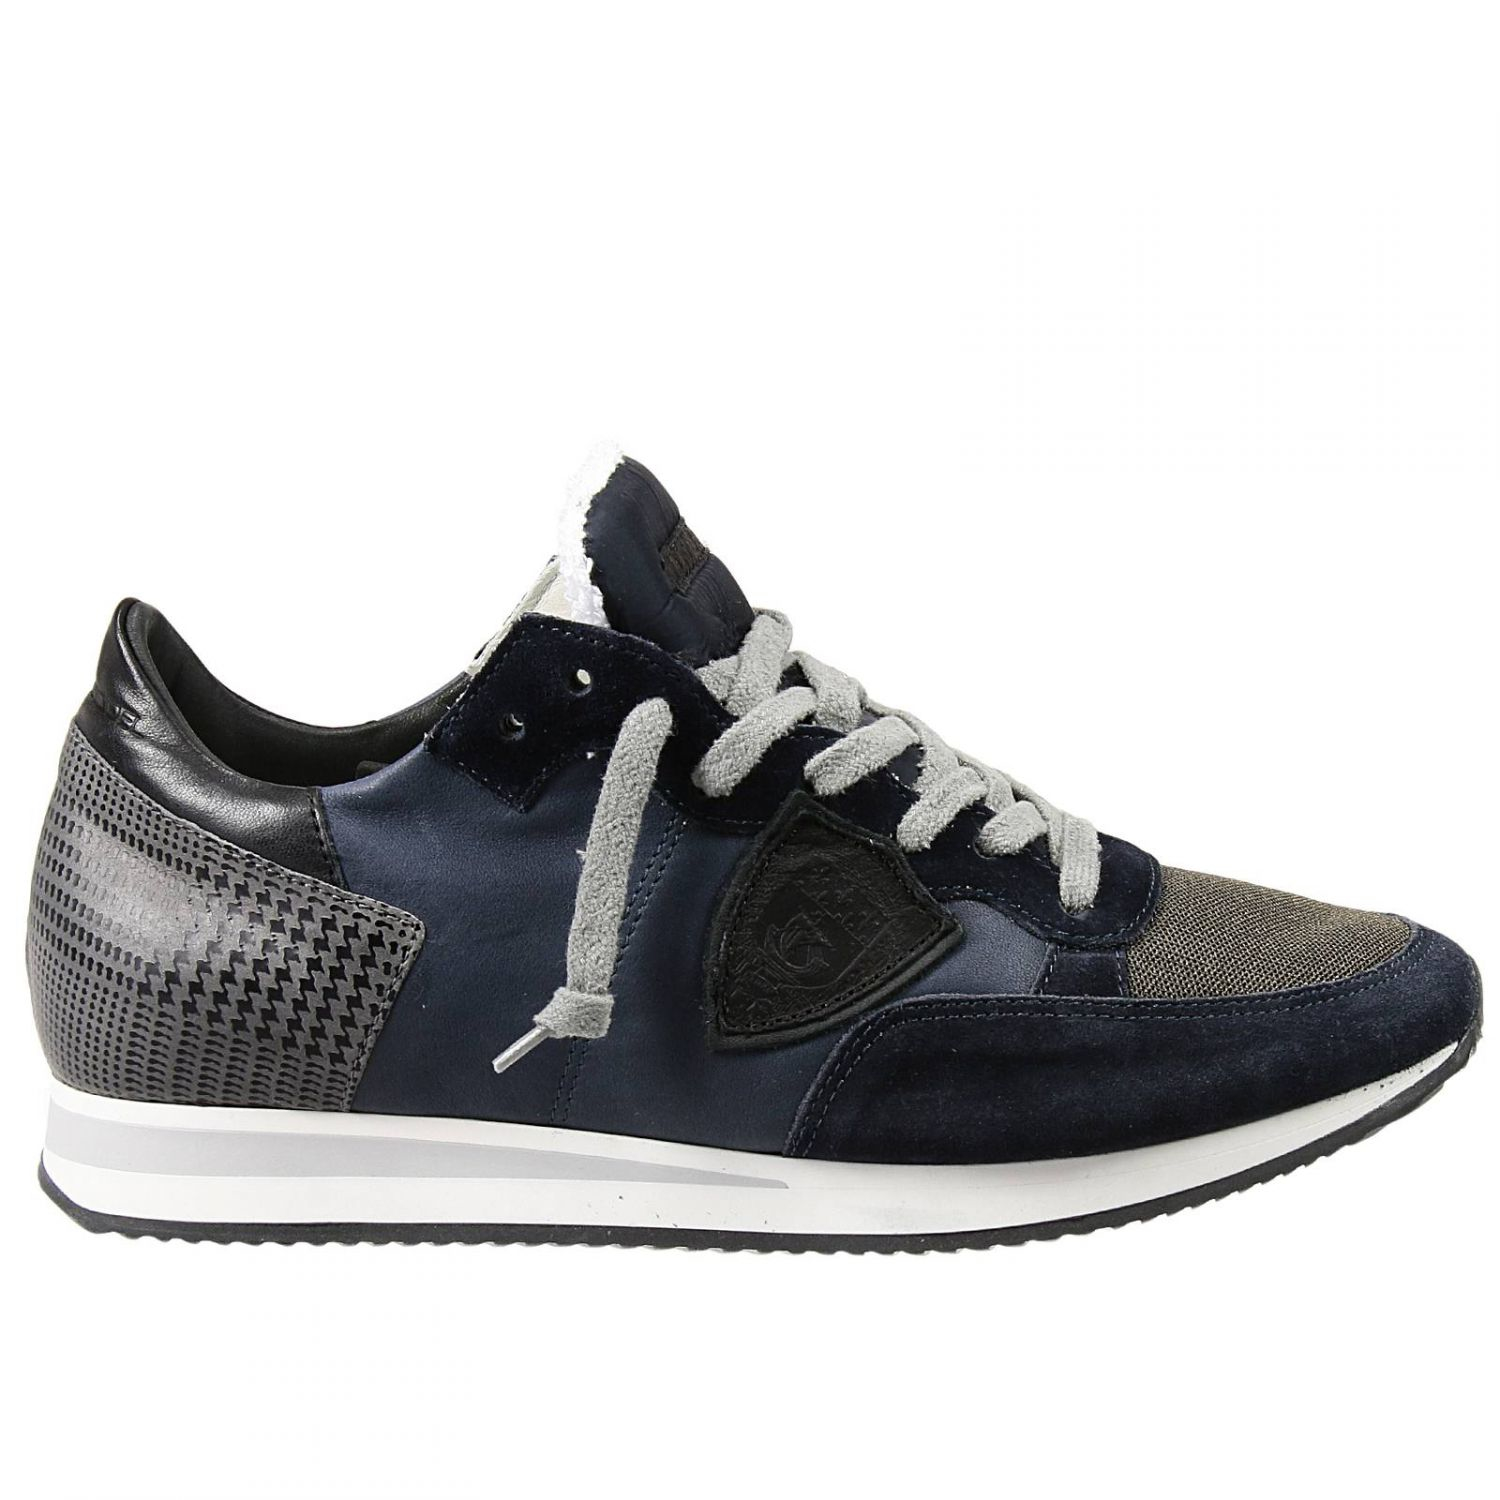 philippe model sneakers in blue for men lyst. Black Bedroom Furniture Sets. Home Design Ideas